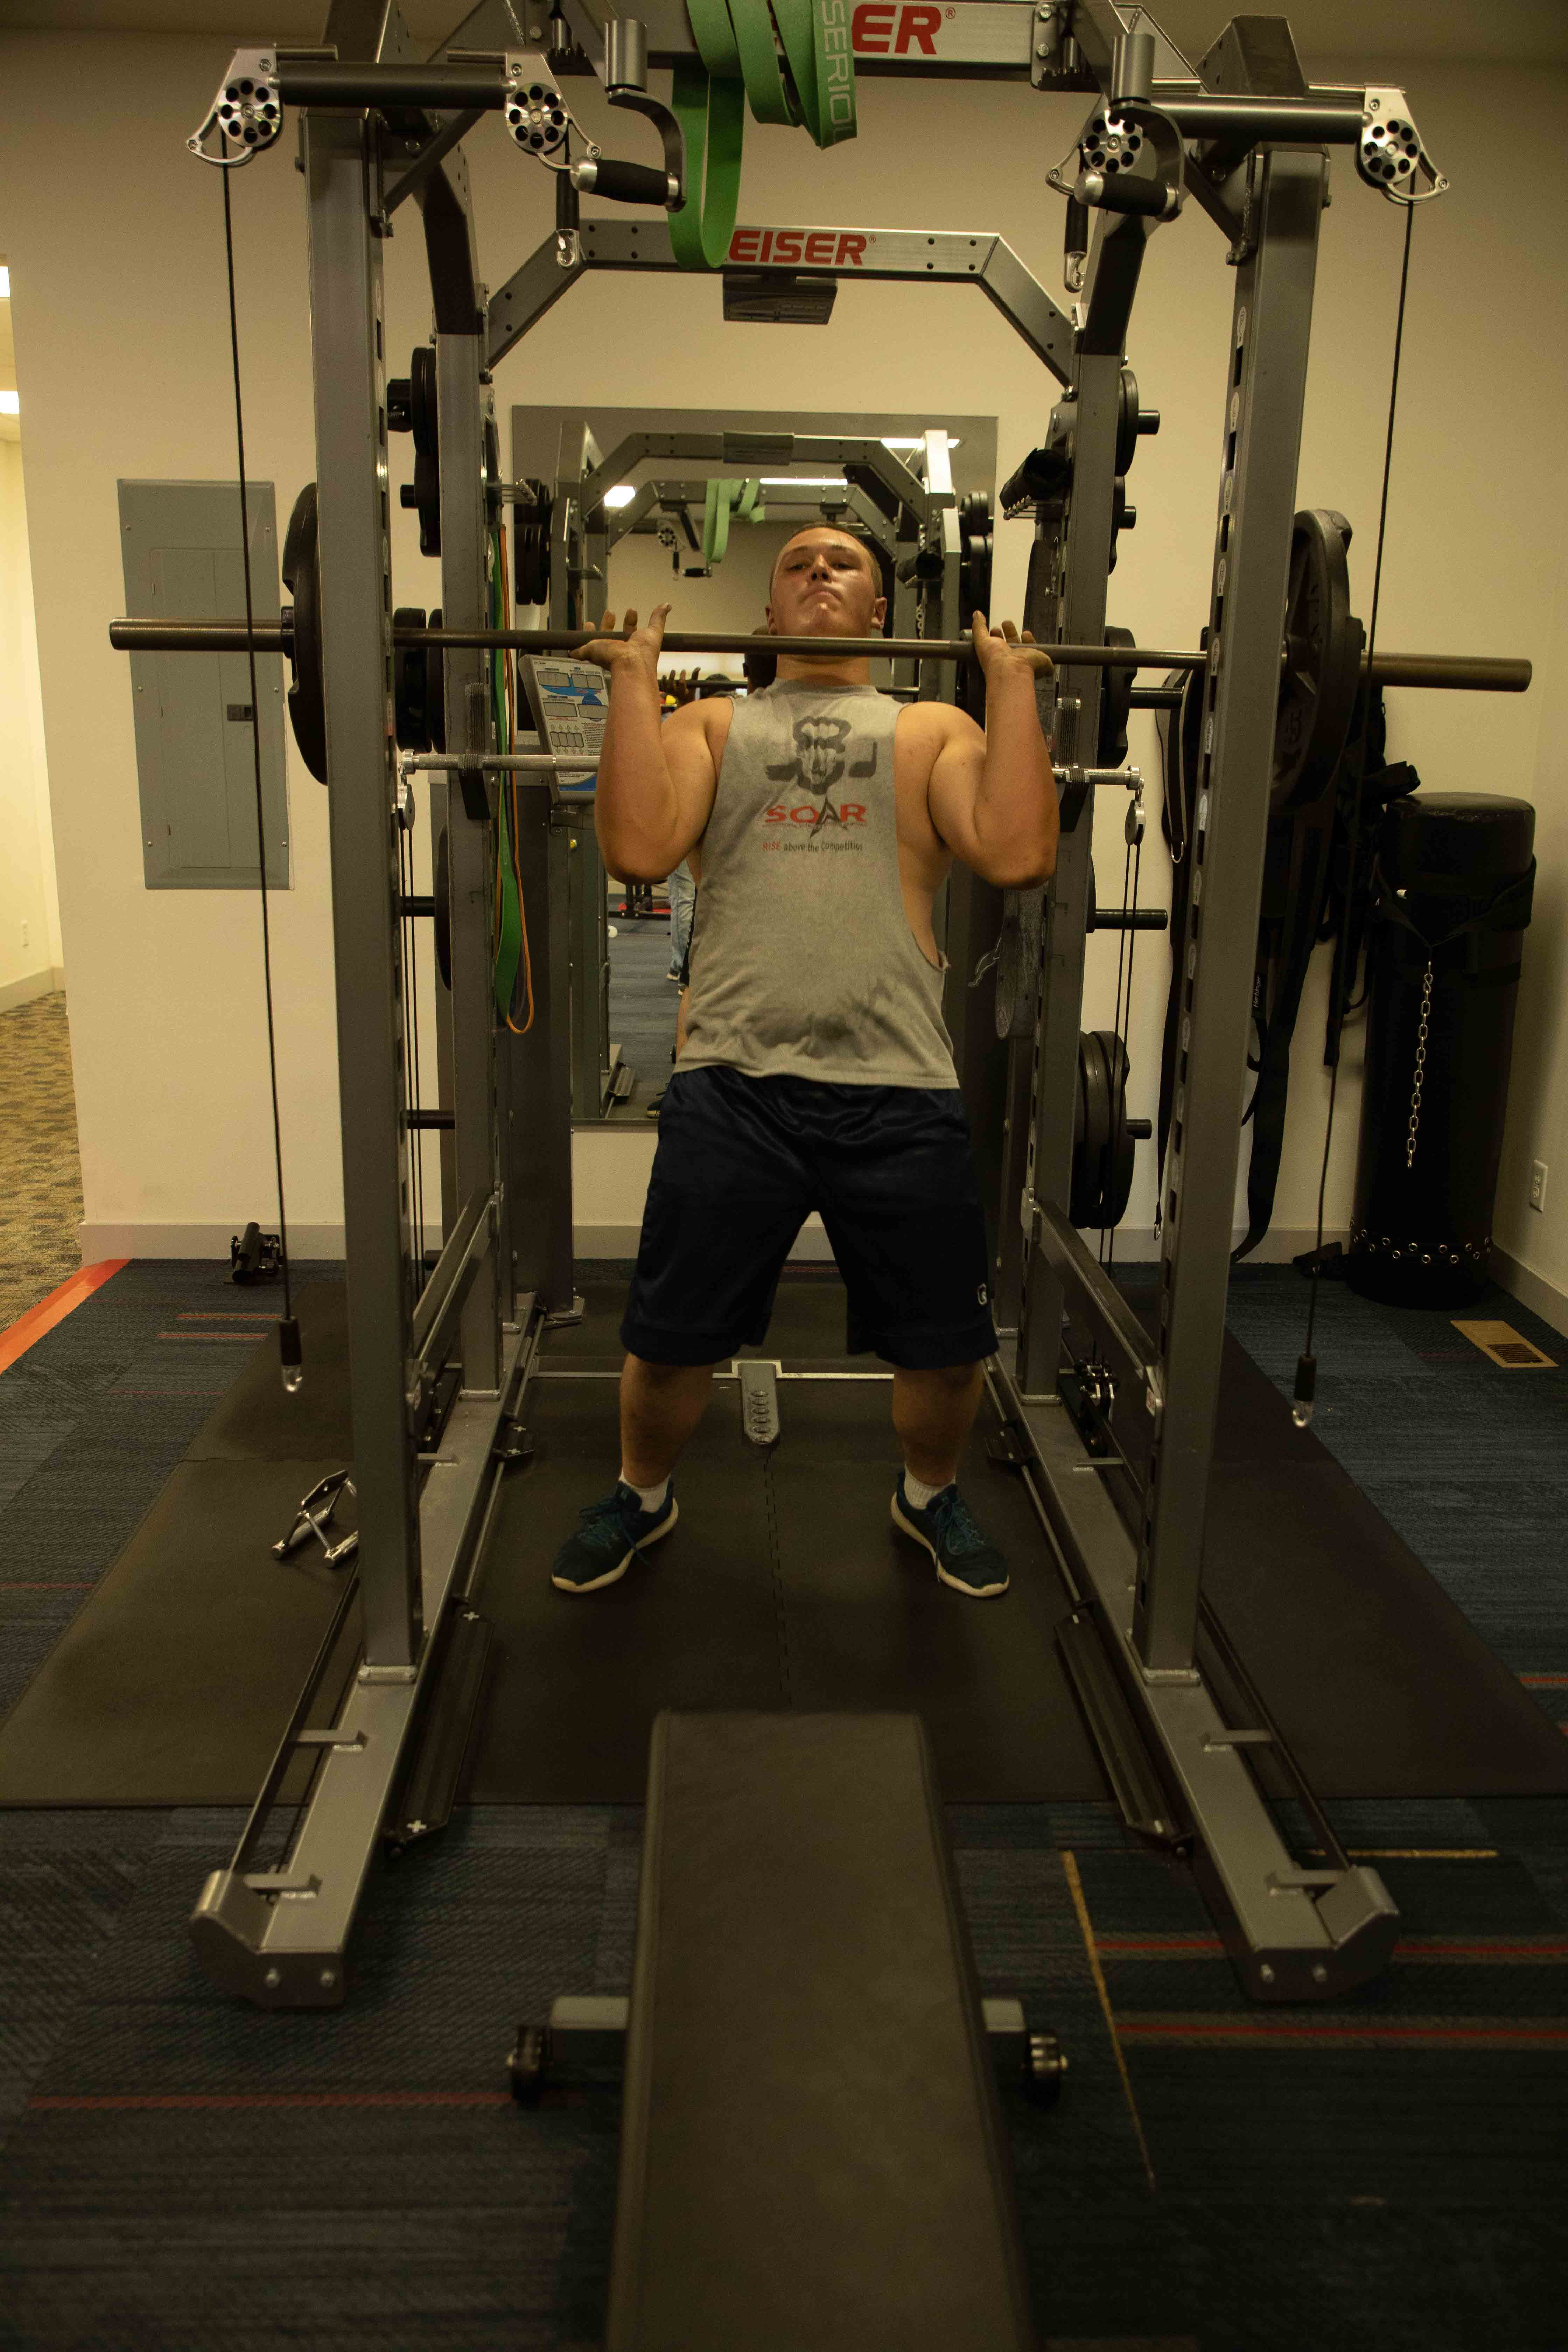 Strong boy doing heavy shoulder presses with a barbell